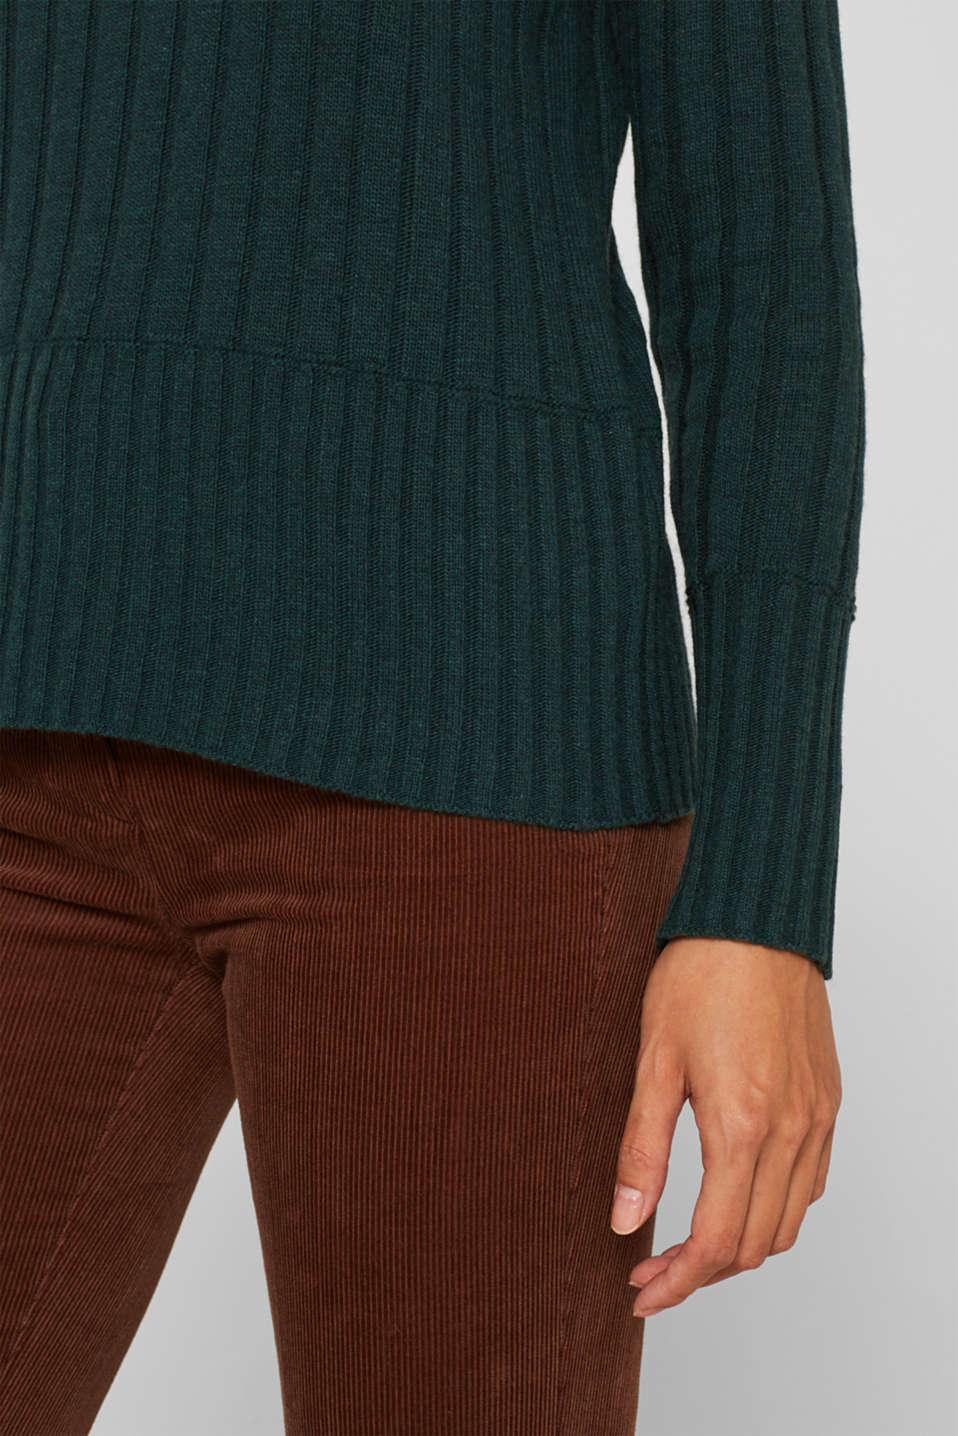 Ribbed jumper containing cashmere, DARK TEAL GREEN 5, detail image number 5